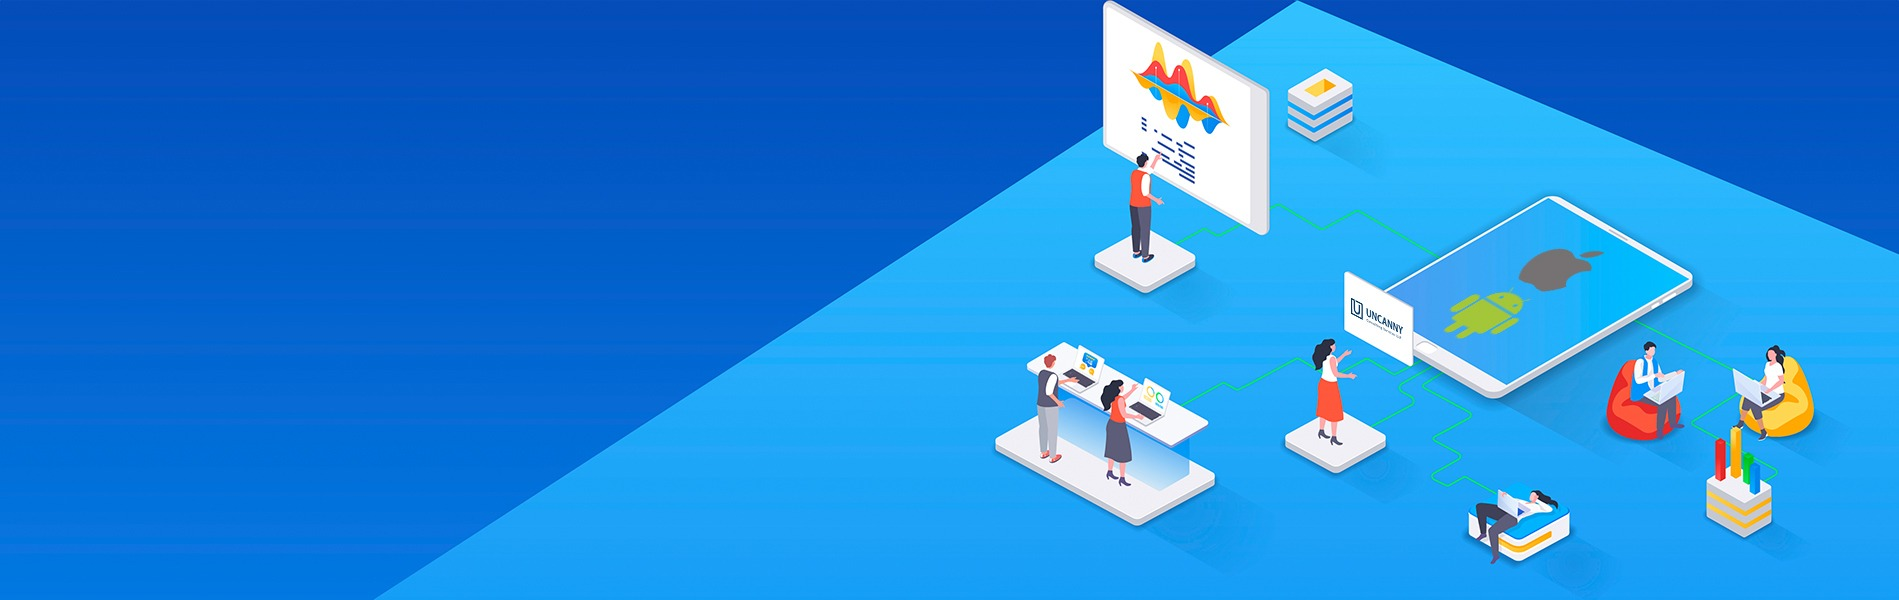 Mobile application development banner with android and iOS logo